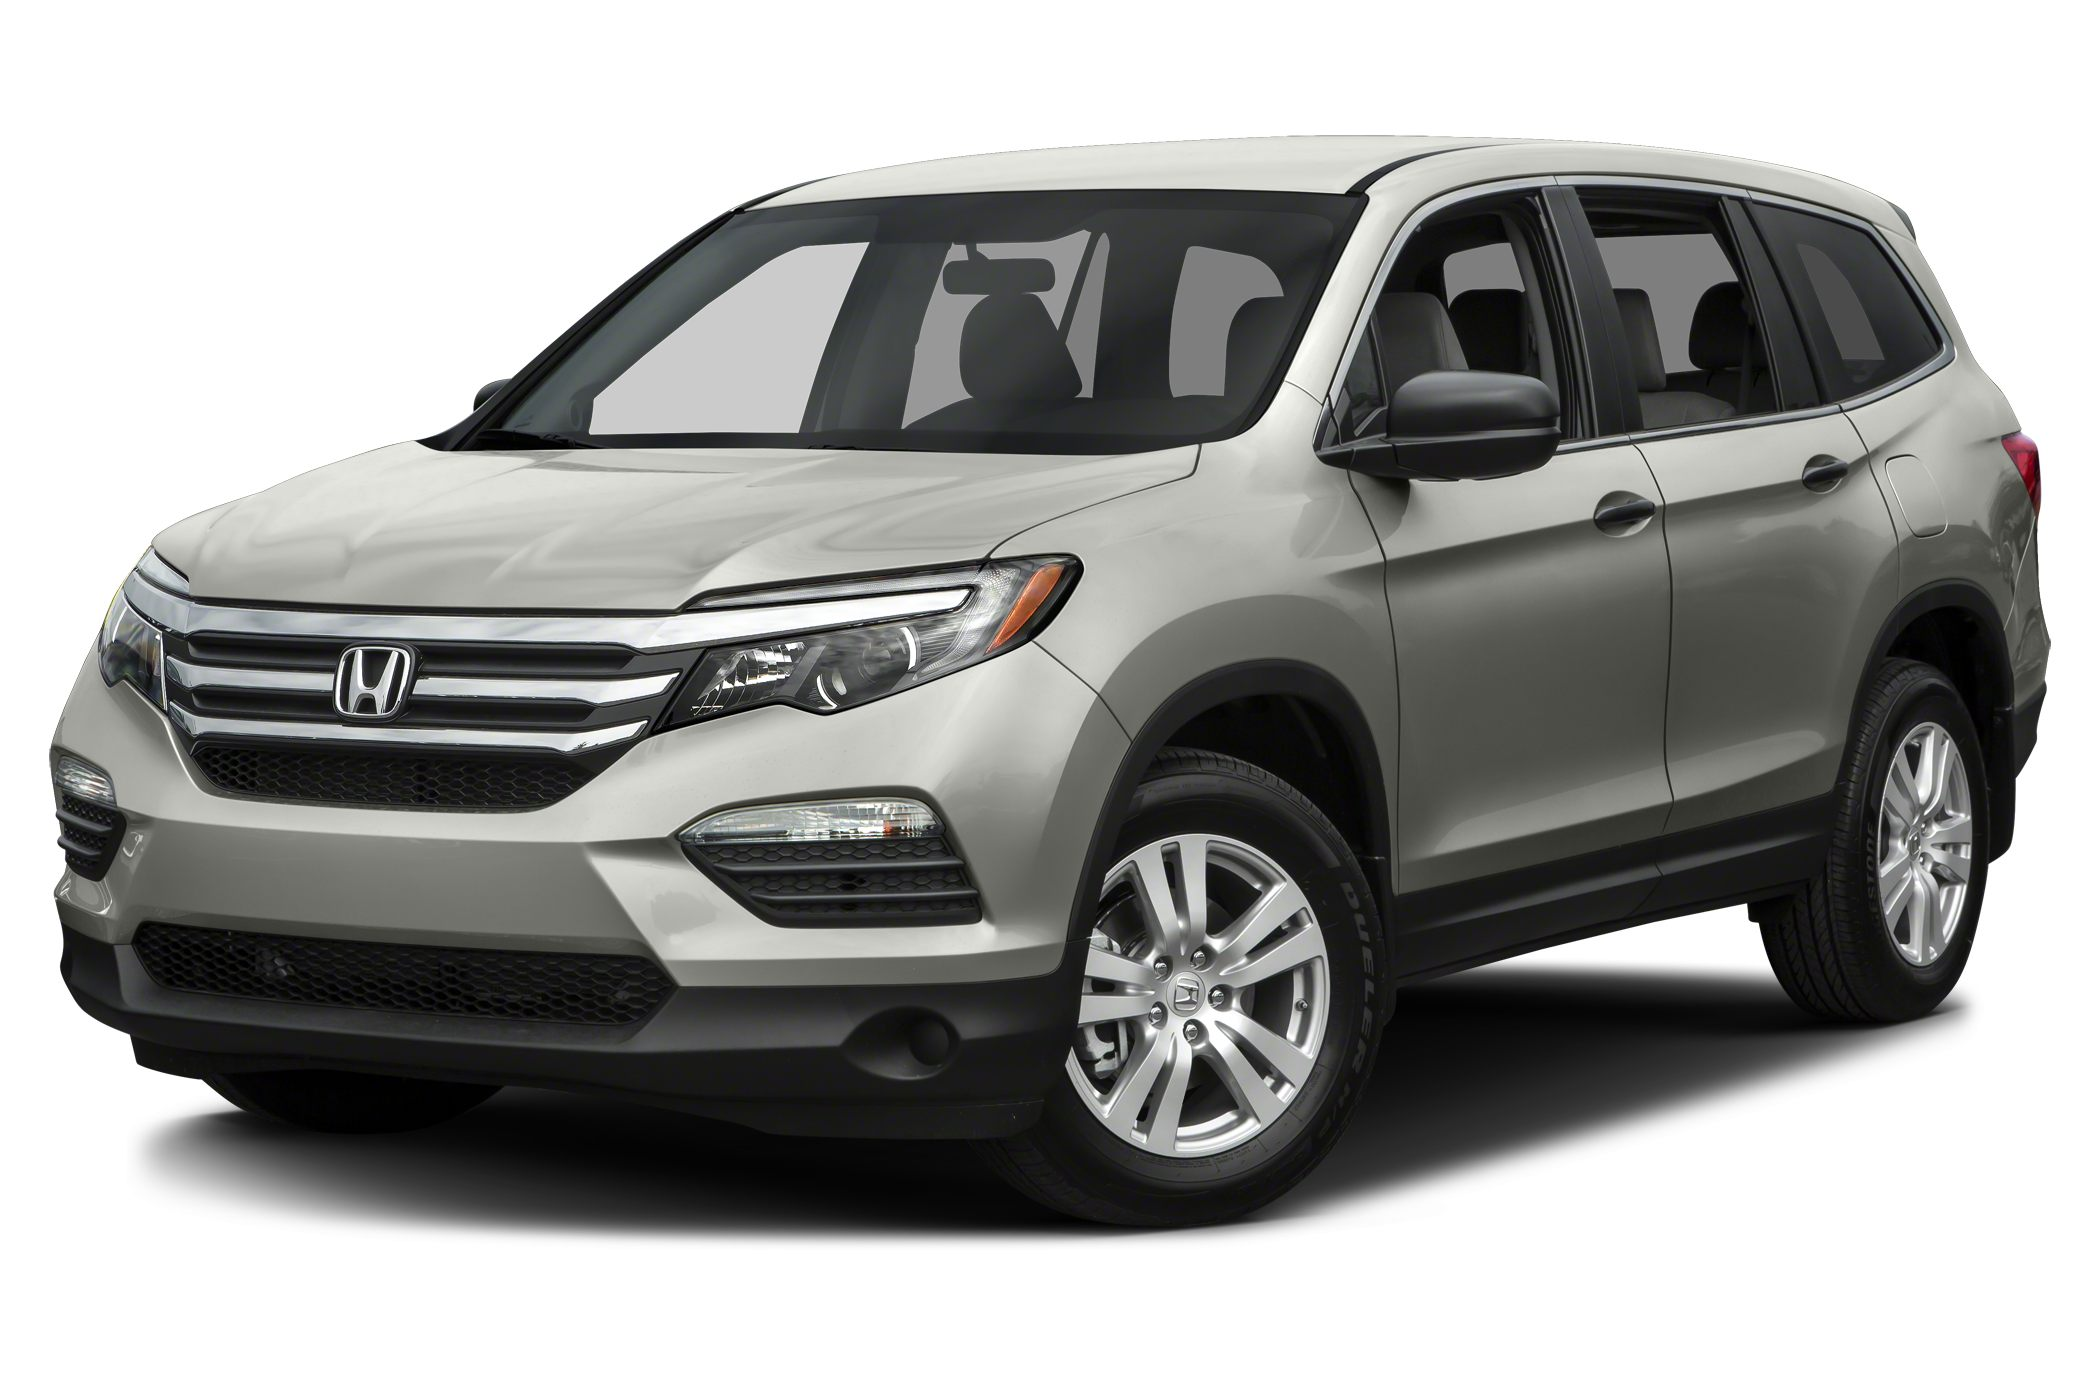 Lx 4dr All Wheel Drive 2016 Honda Pilot Photos